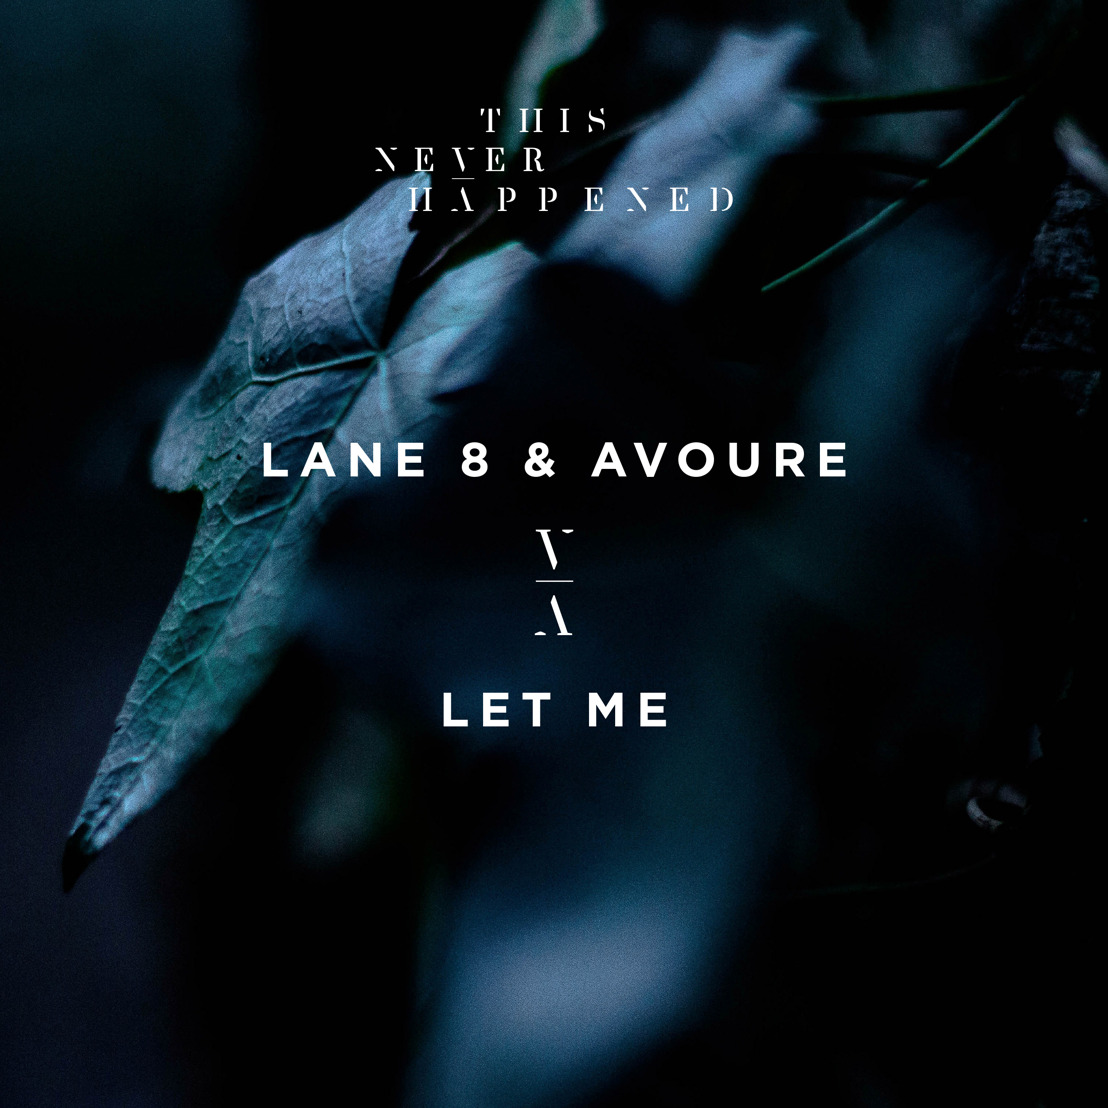 Lane 8 and Avoure Release 'Let Me' via This Never Happened